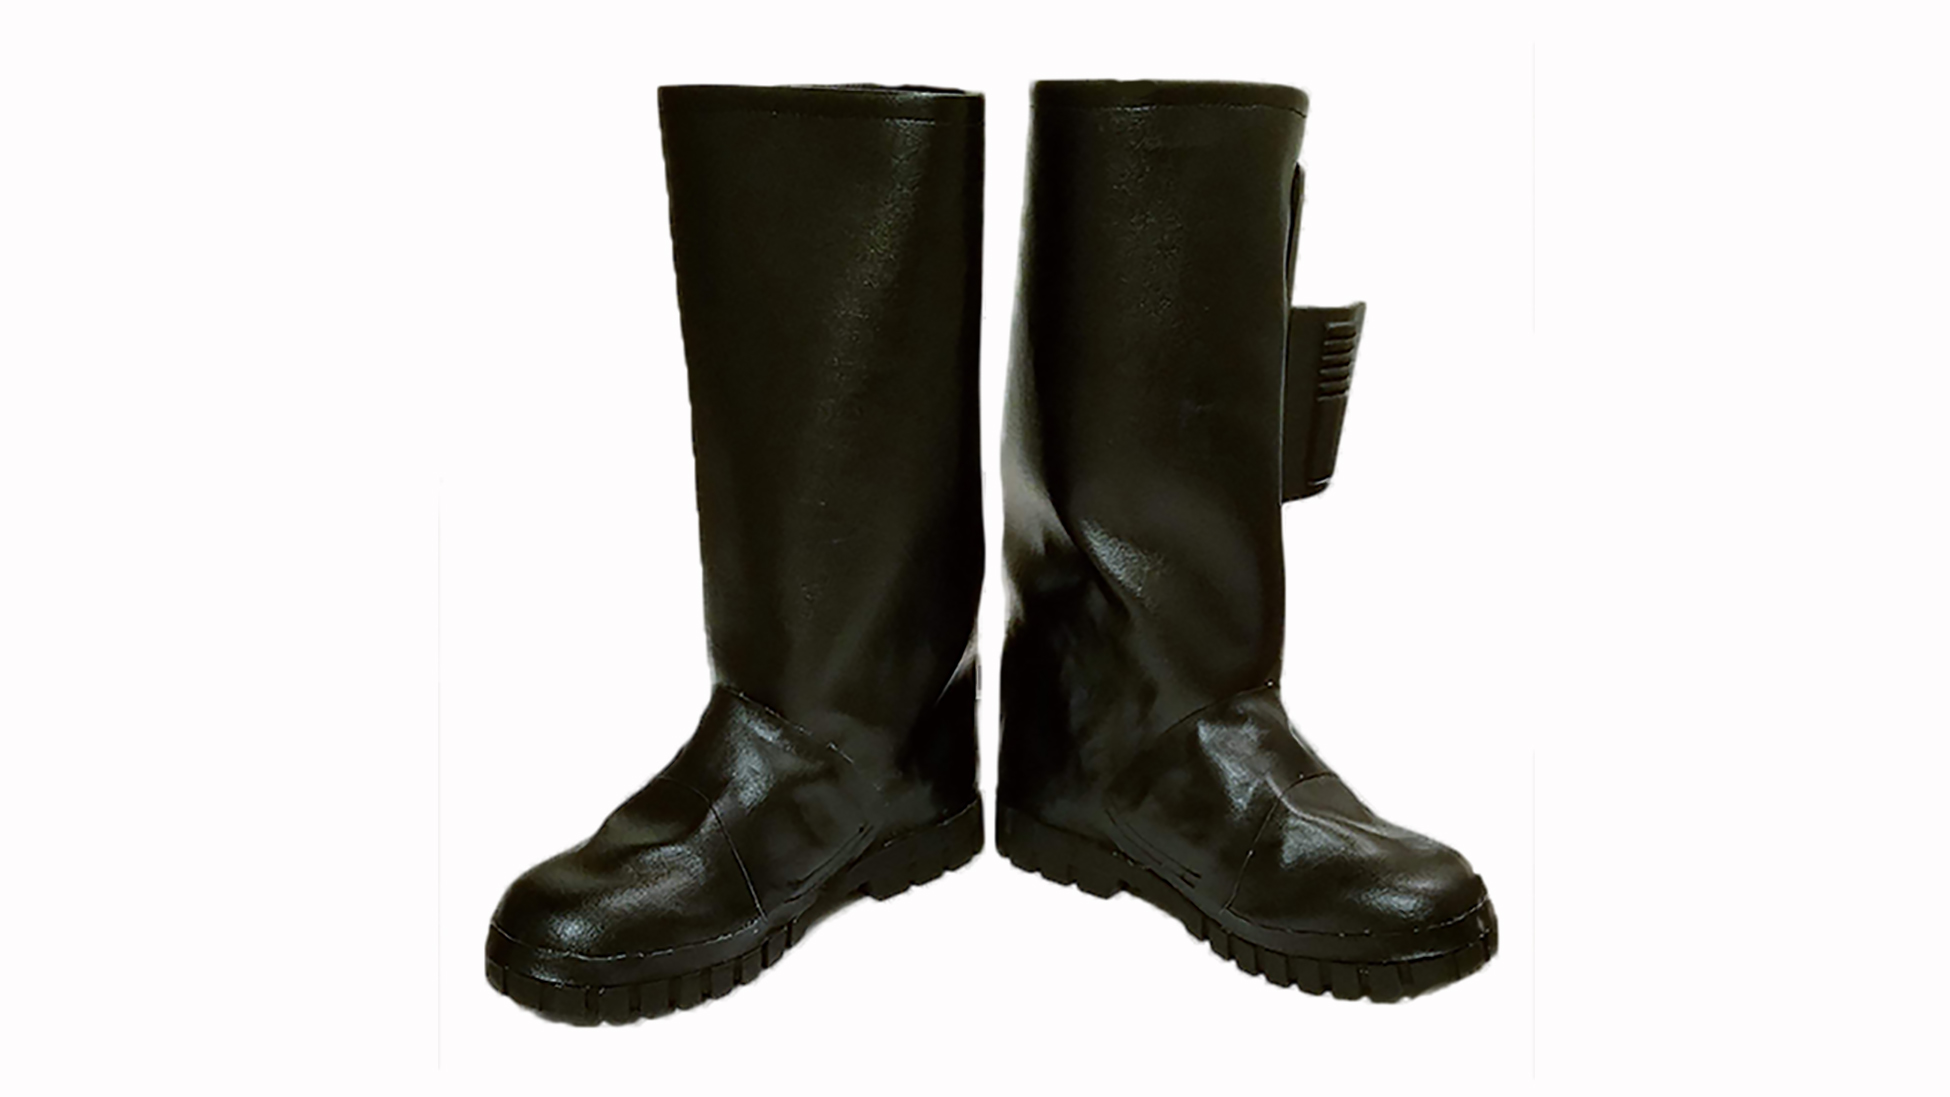 File:TX shadow scout boots.jpg